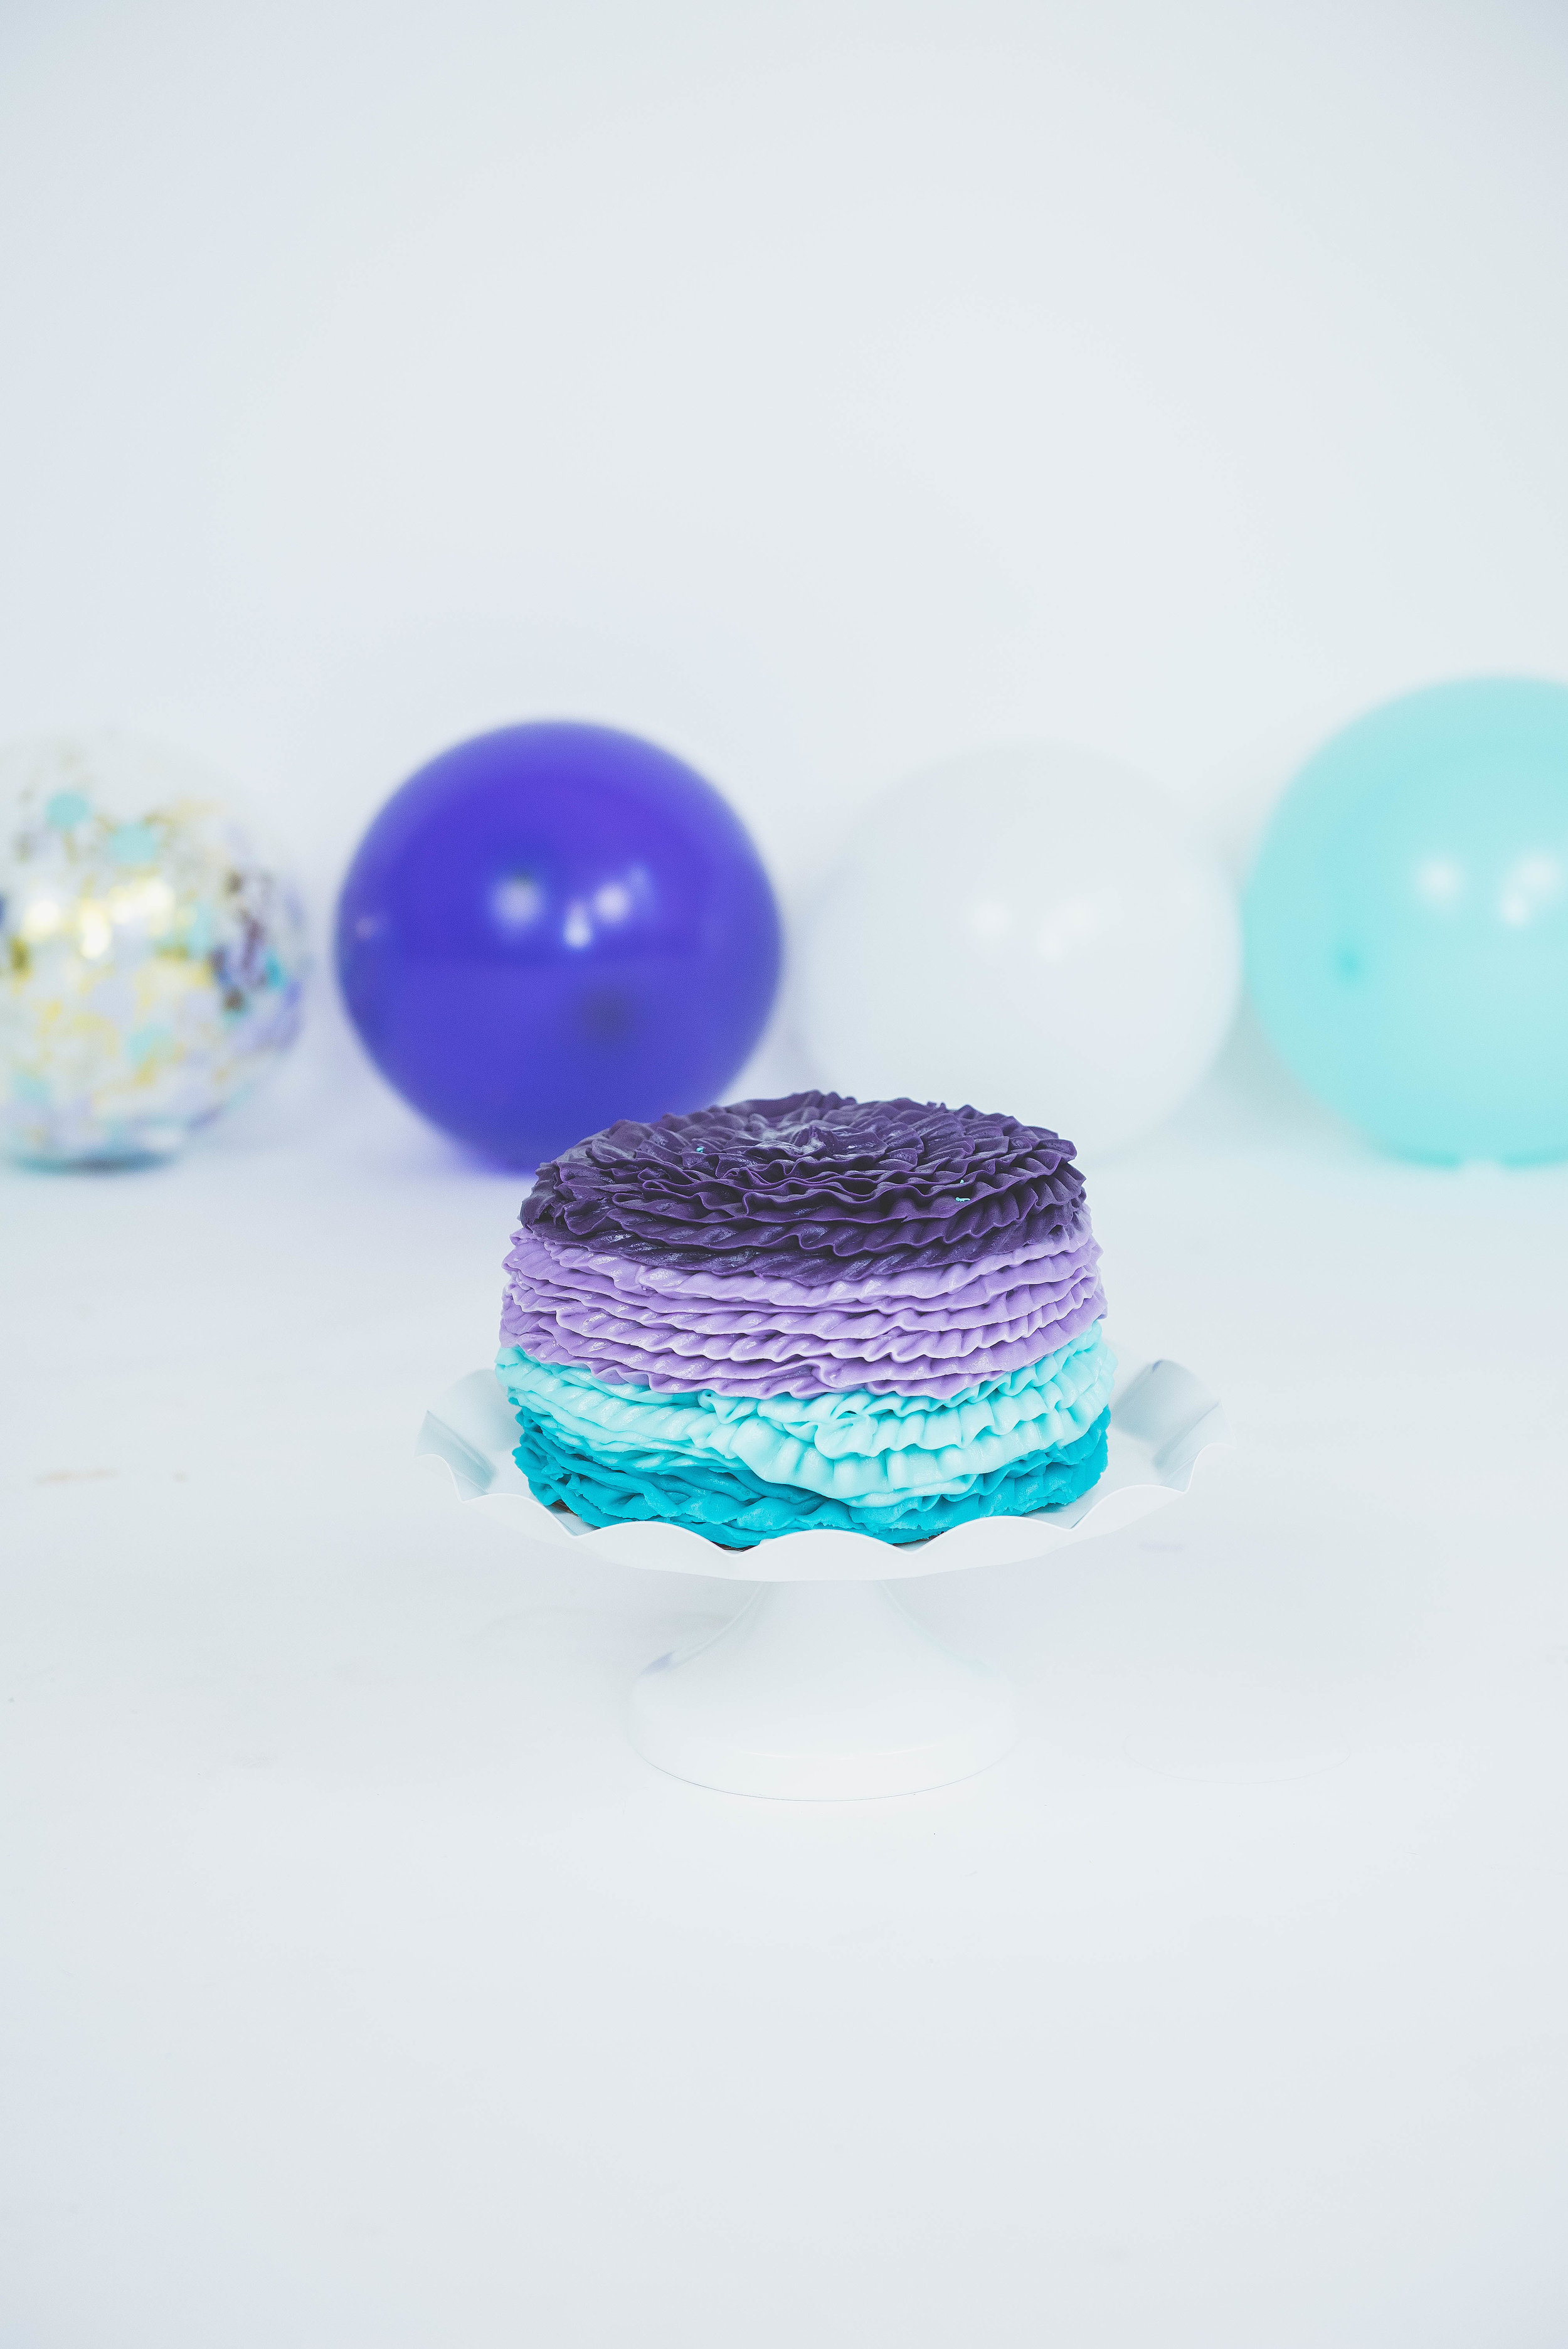 purple & turquoise smash cake